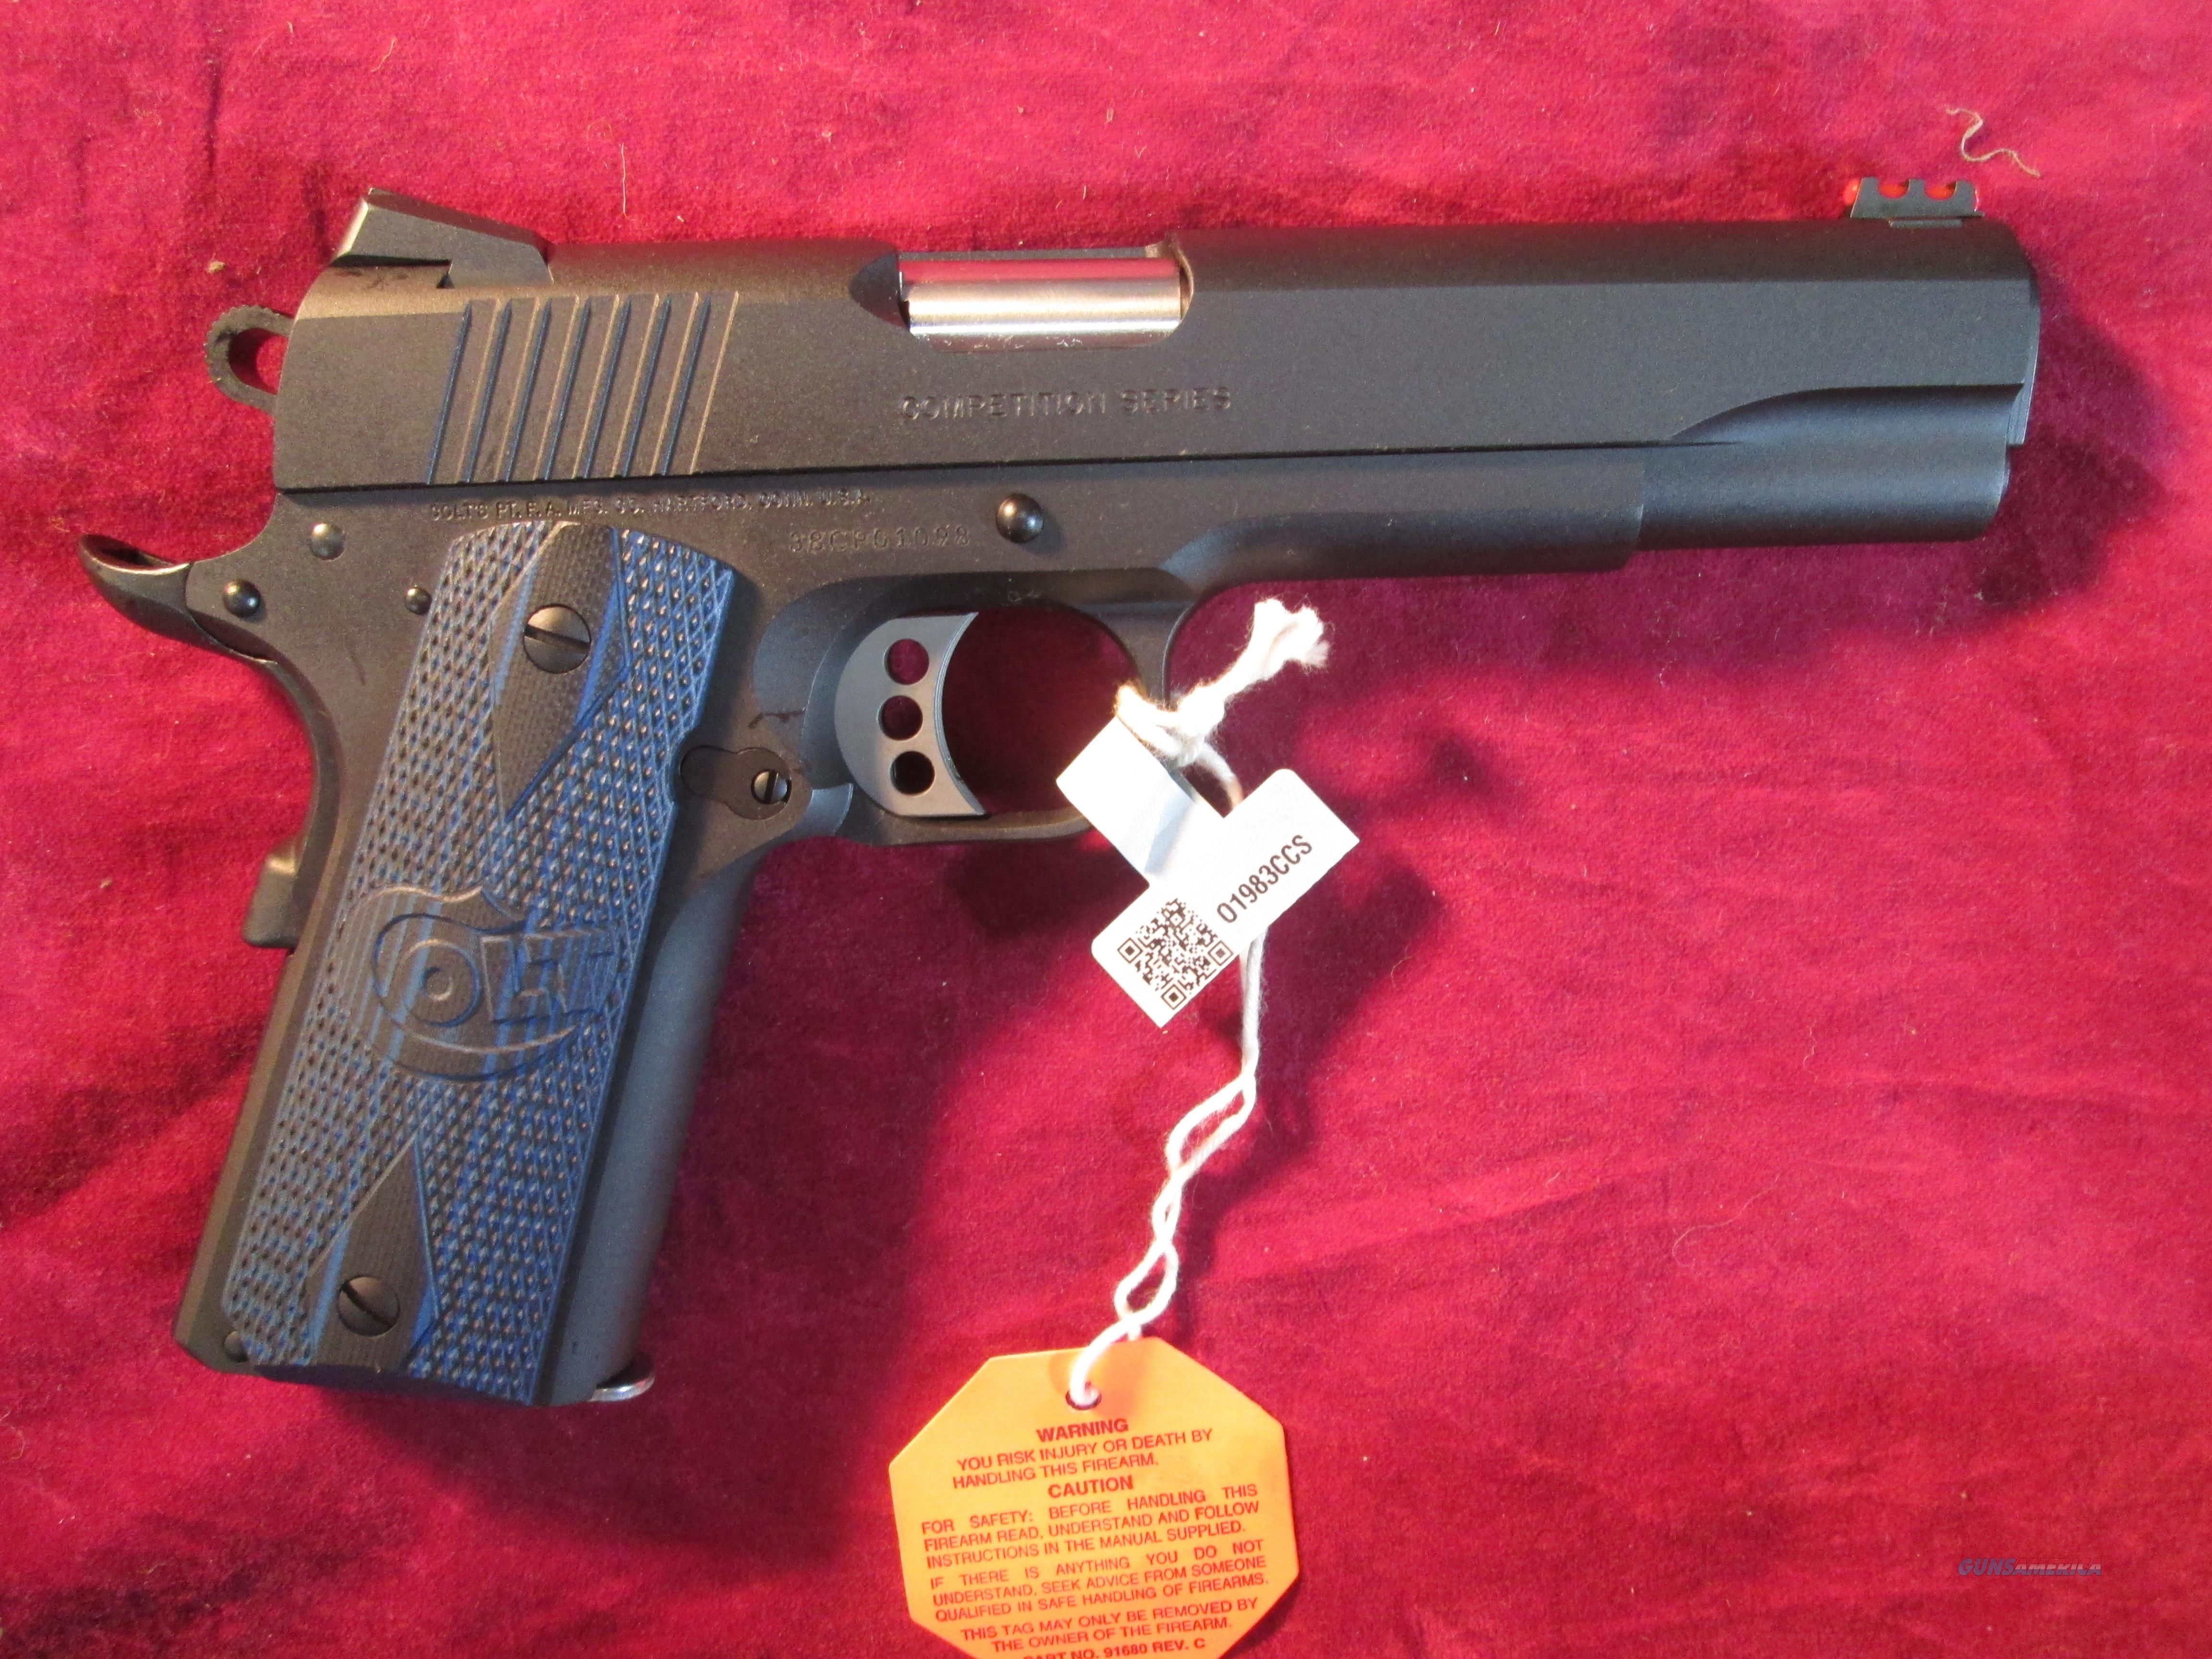 COLT COMPETITION PISTOL 38 SUPER GOVERNMENT MODEL NEW (01983CCS)  Guns > Pistols > Colt Automatic Pistols (1911 & Var)